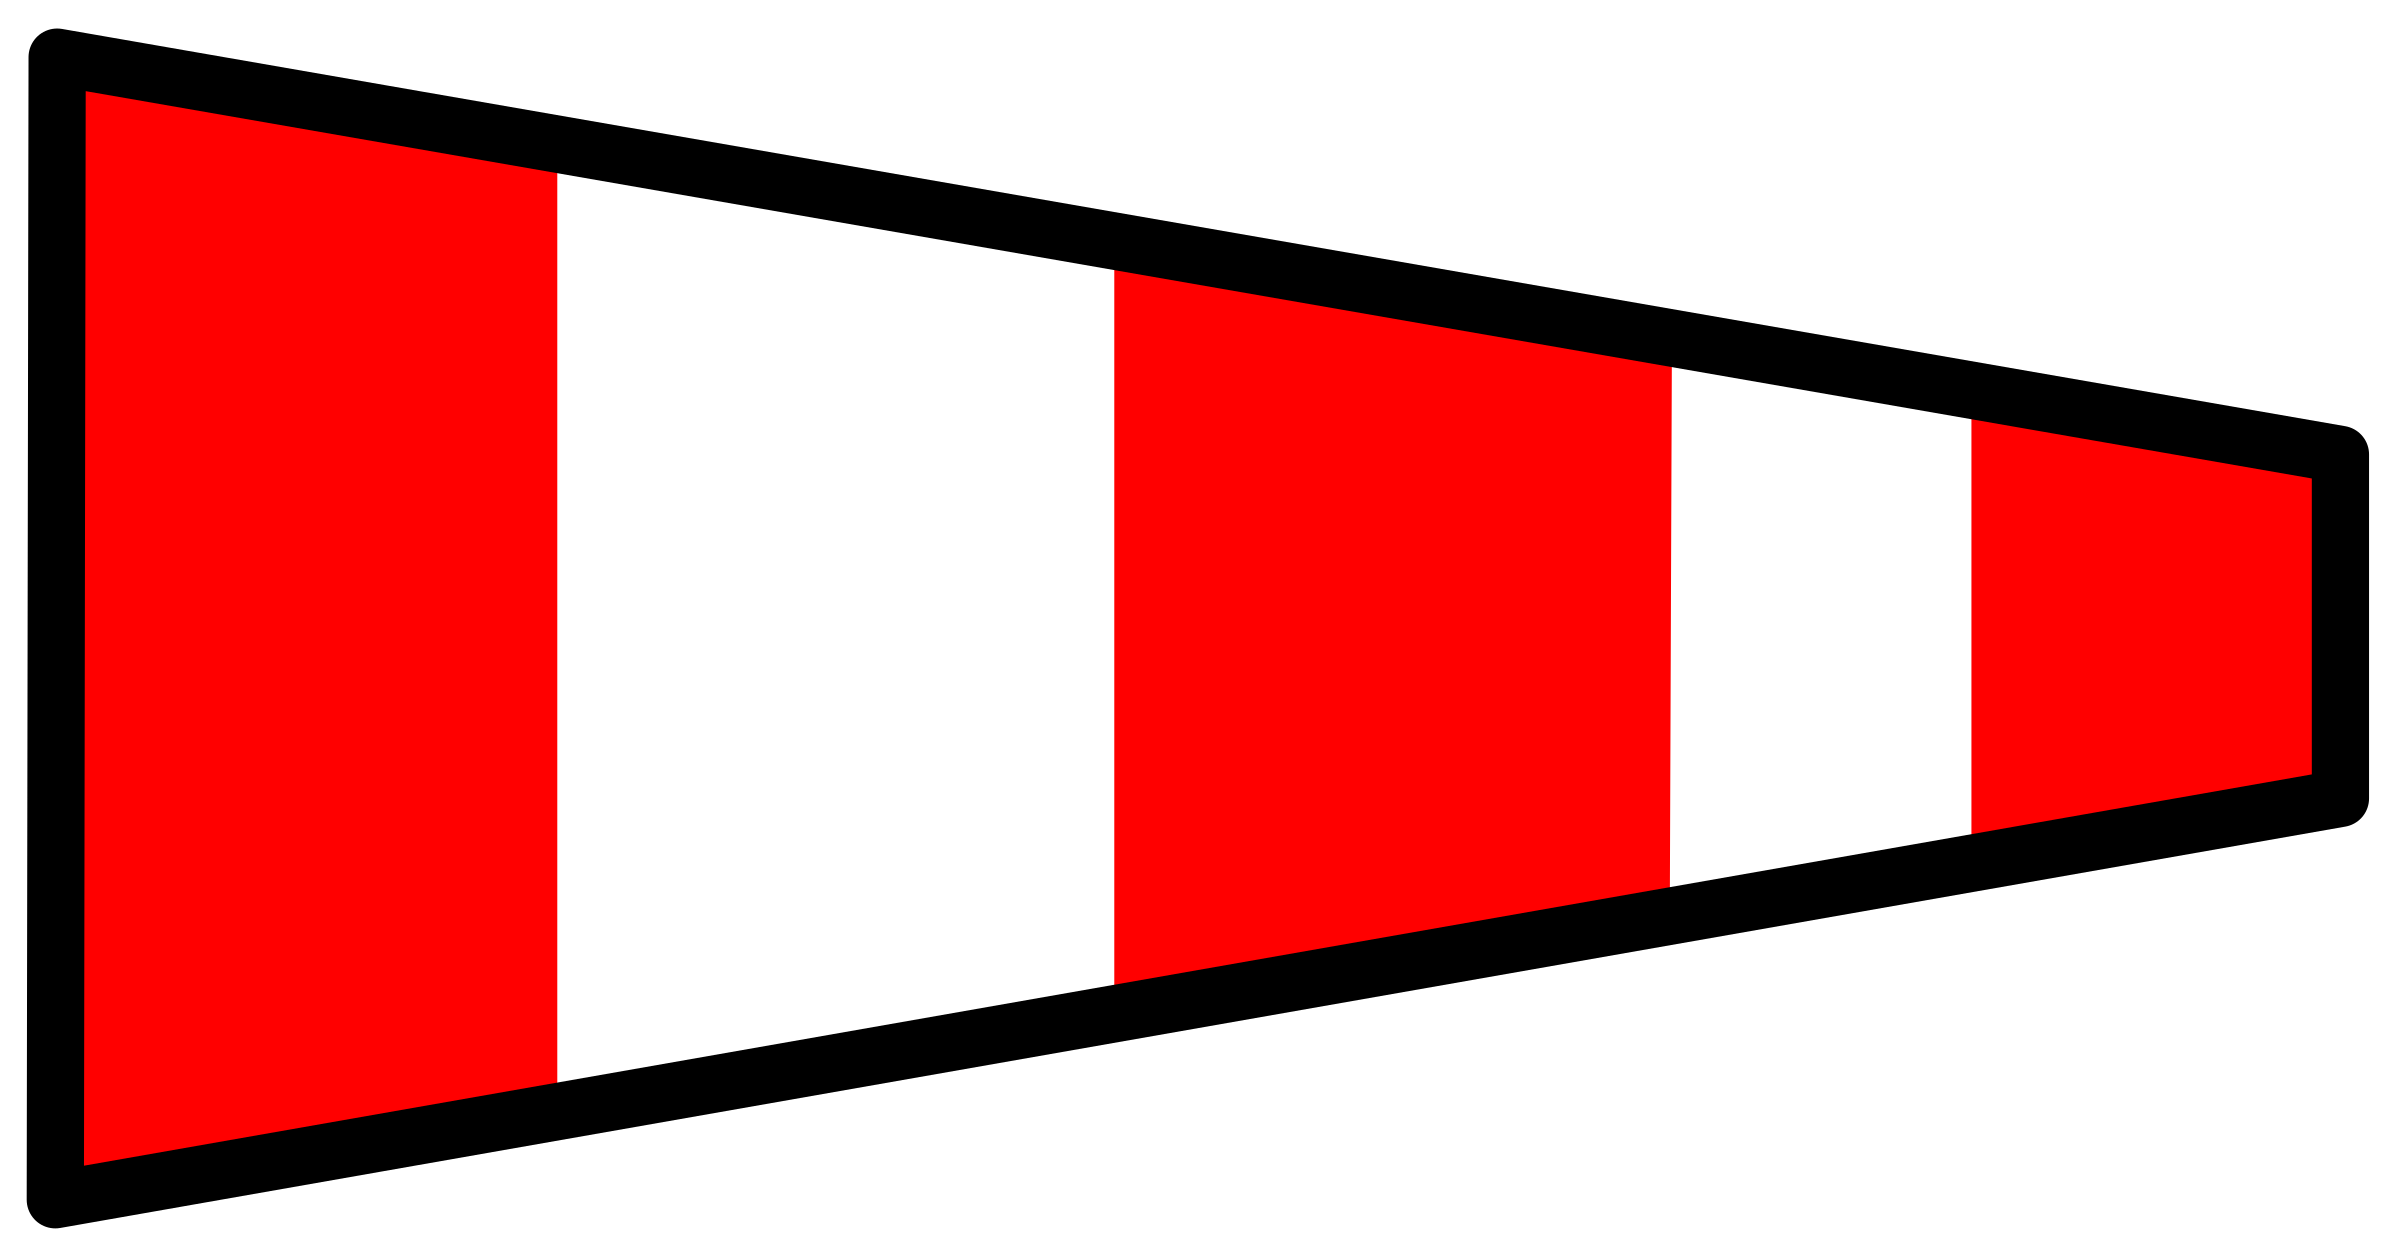 Pennant svg swallowtail. Signal flag answering icons